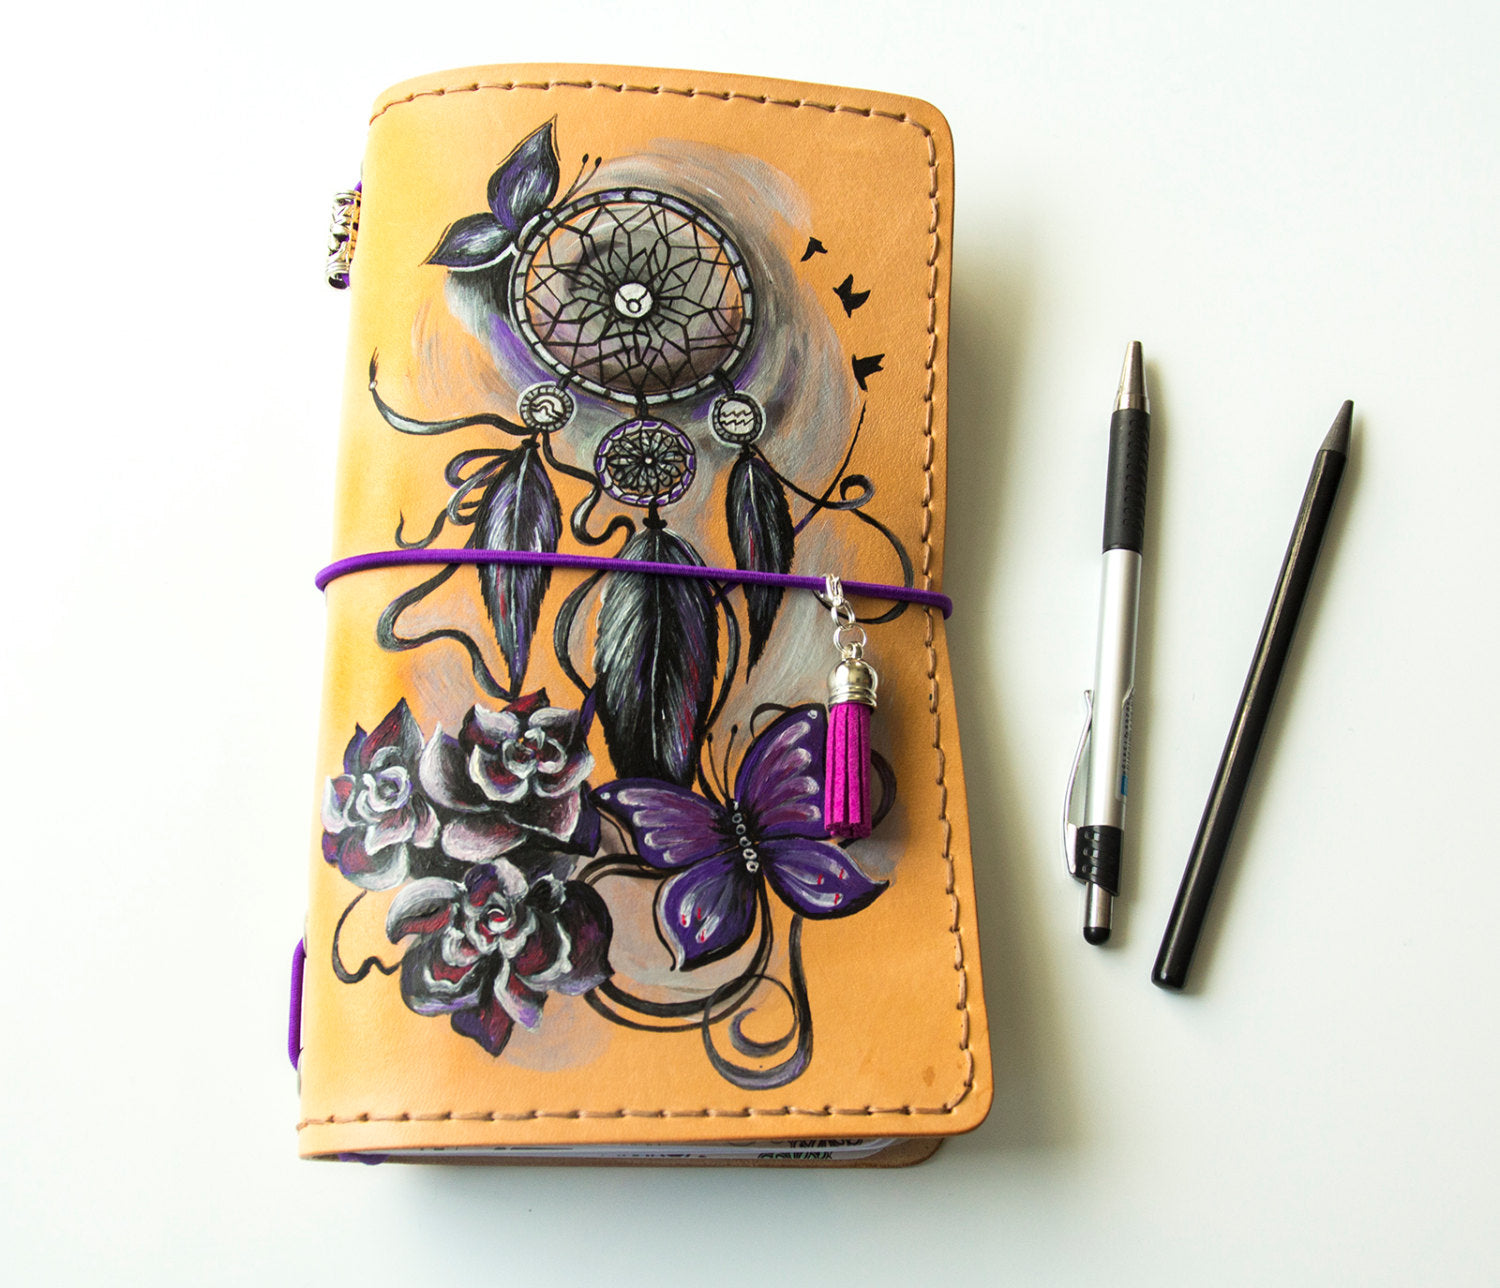 Personalized Dreamcatcher Hand Painted Travellers Notebook Leather Journal Standard Size Notebook Plus 3 Inserts 192 Pages